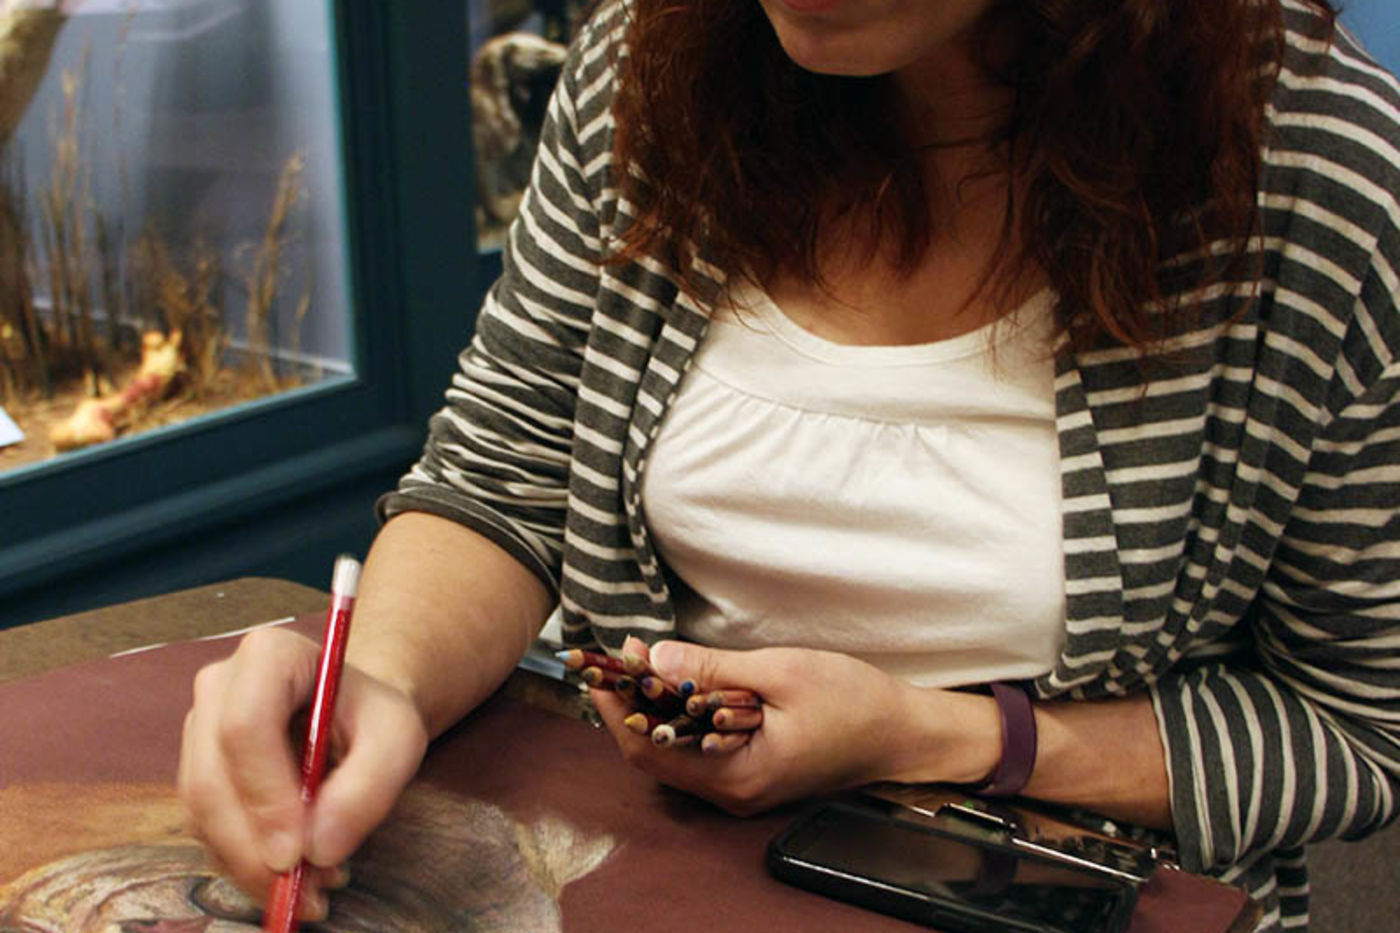 A woman with dark hair and glasses sketching a cougar in a museum gallery, with a specimen of a large cat in the background